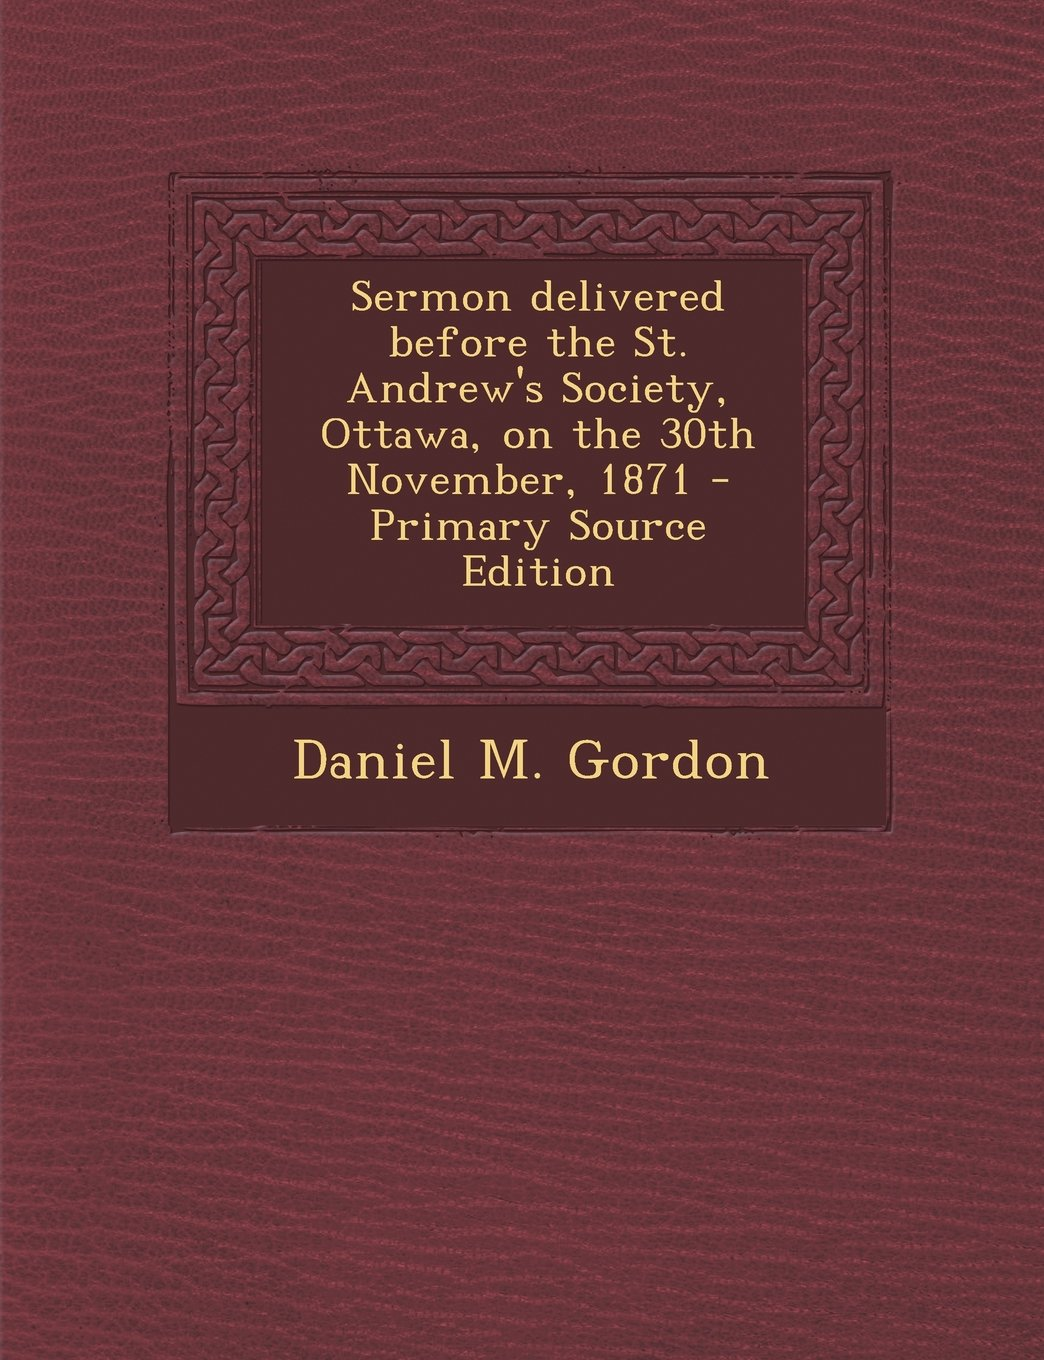 Download Sermon delivered before the St. Andrew's Society, Ottawa, on the 30th November, 1871 pdf epub